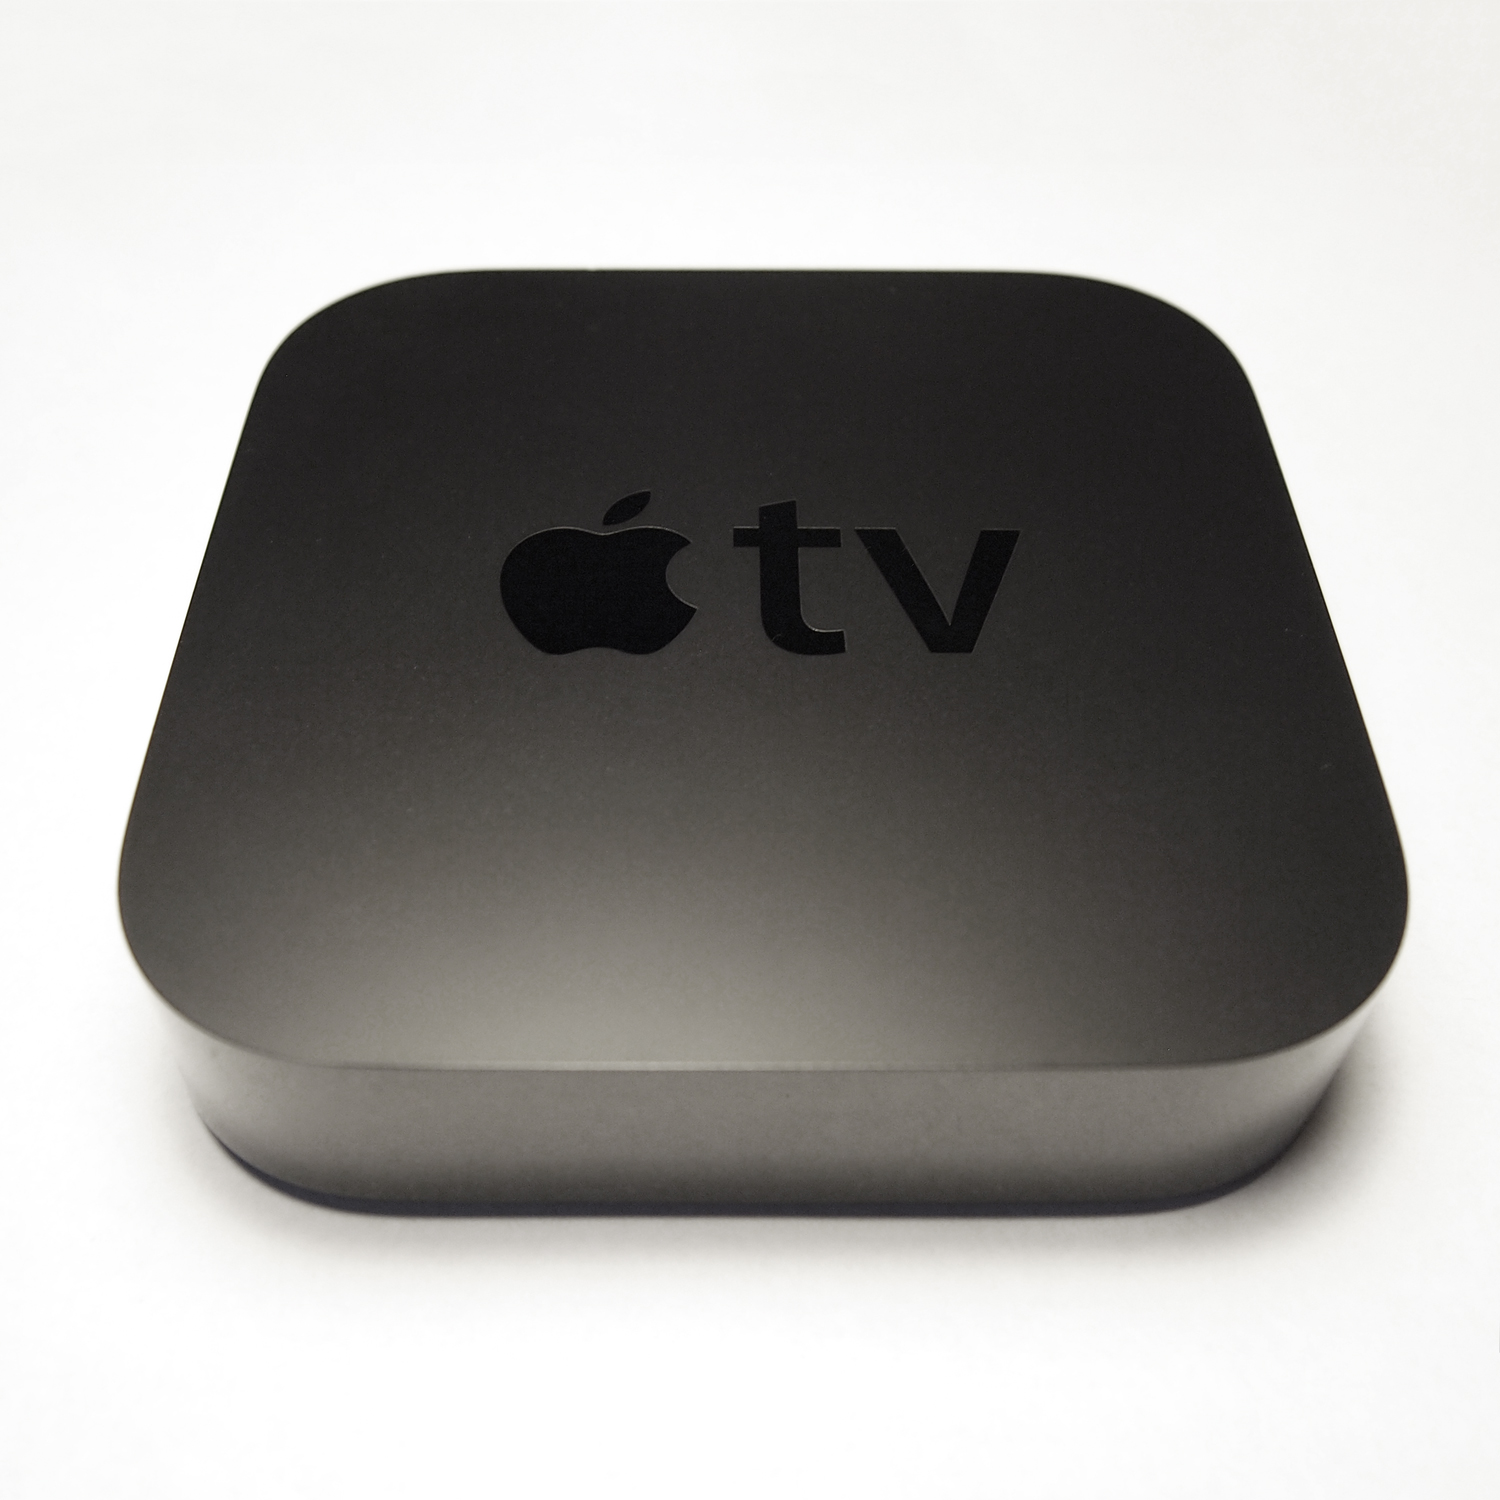 Apple Pushes CNBC, Fox Now To Apple TV